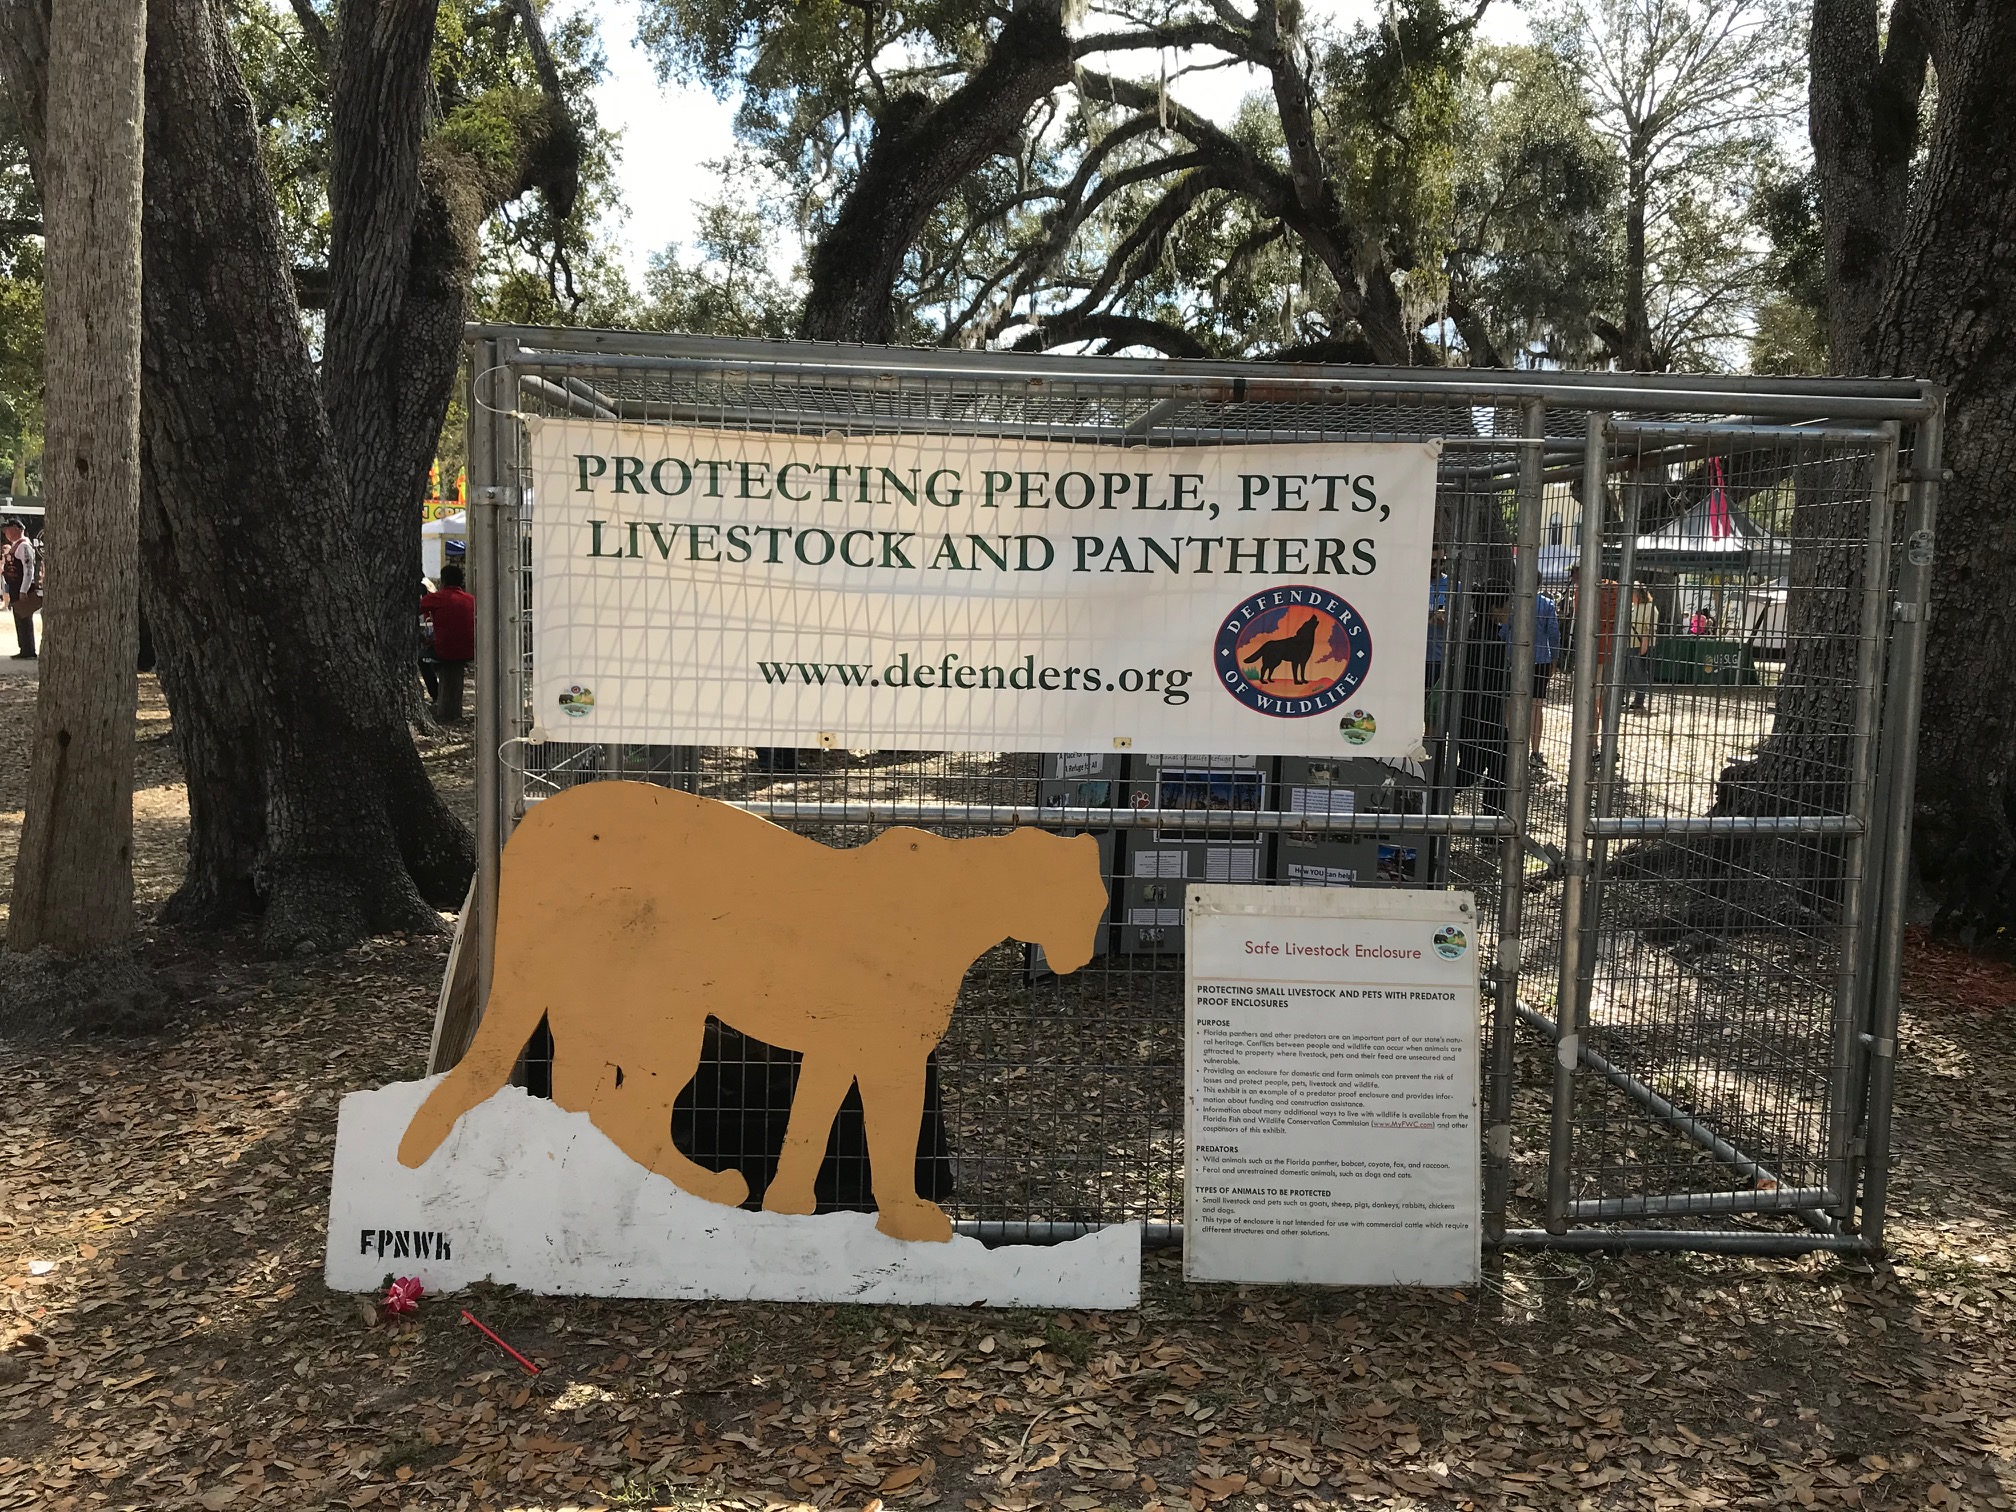 Panther Enclosure at the Swamp Cabbage Festival in LaBelle, Florida